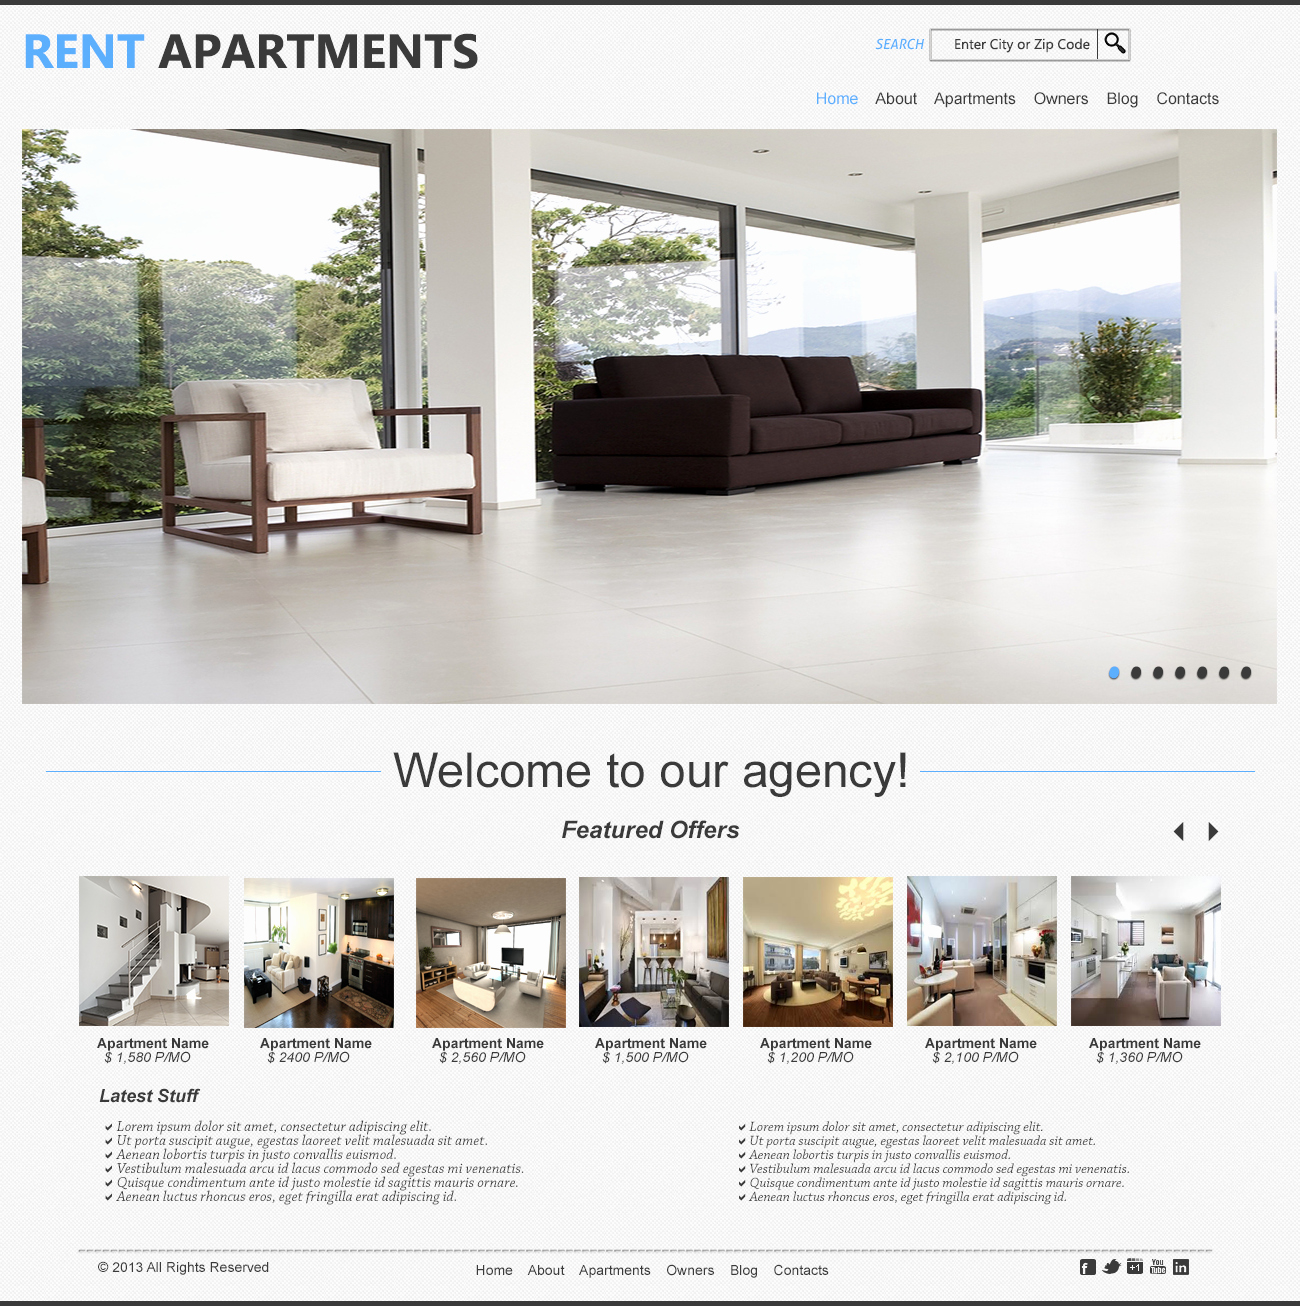 Apartment for Rent Flyer Template Luxury 30 Of Apartments for Rent Advertisement Free